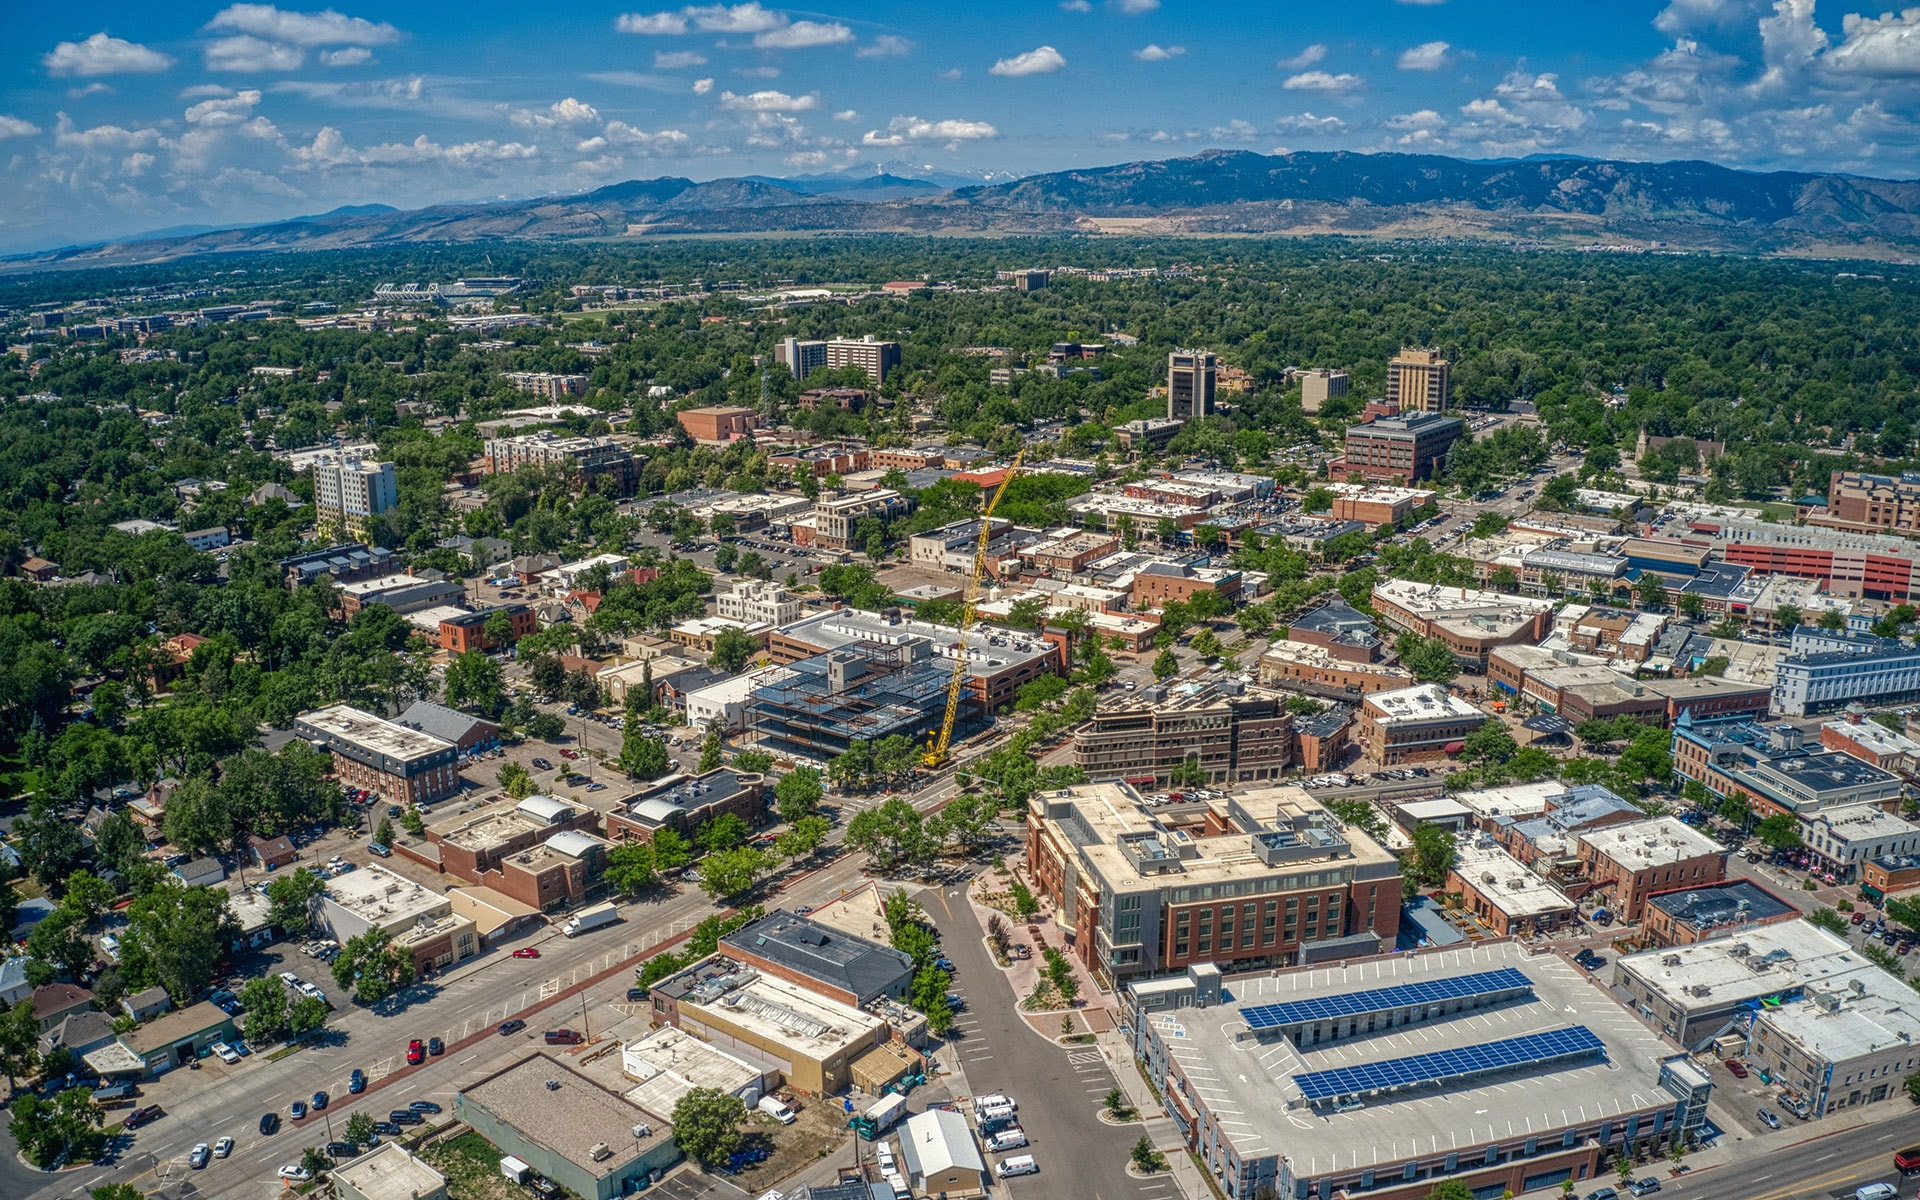 Aerial view of downtown Fort Collins, Colorado in the foreground with mountains and blue sky in the background